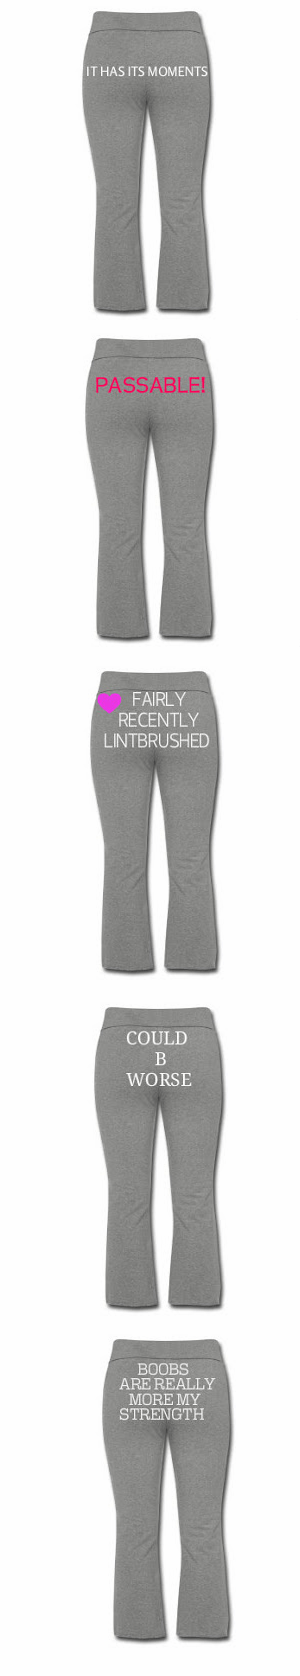 Sweatpants With More Honest Words on the Butt